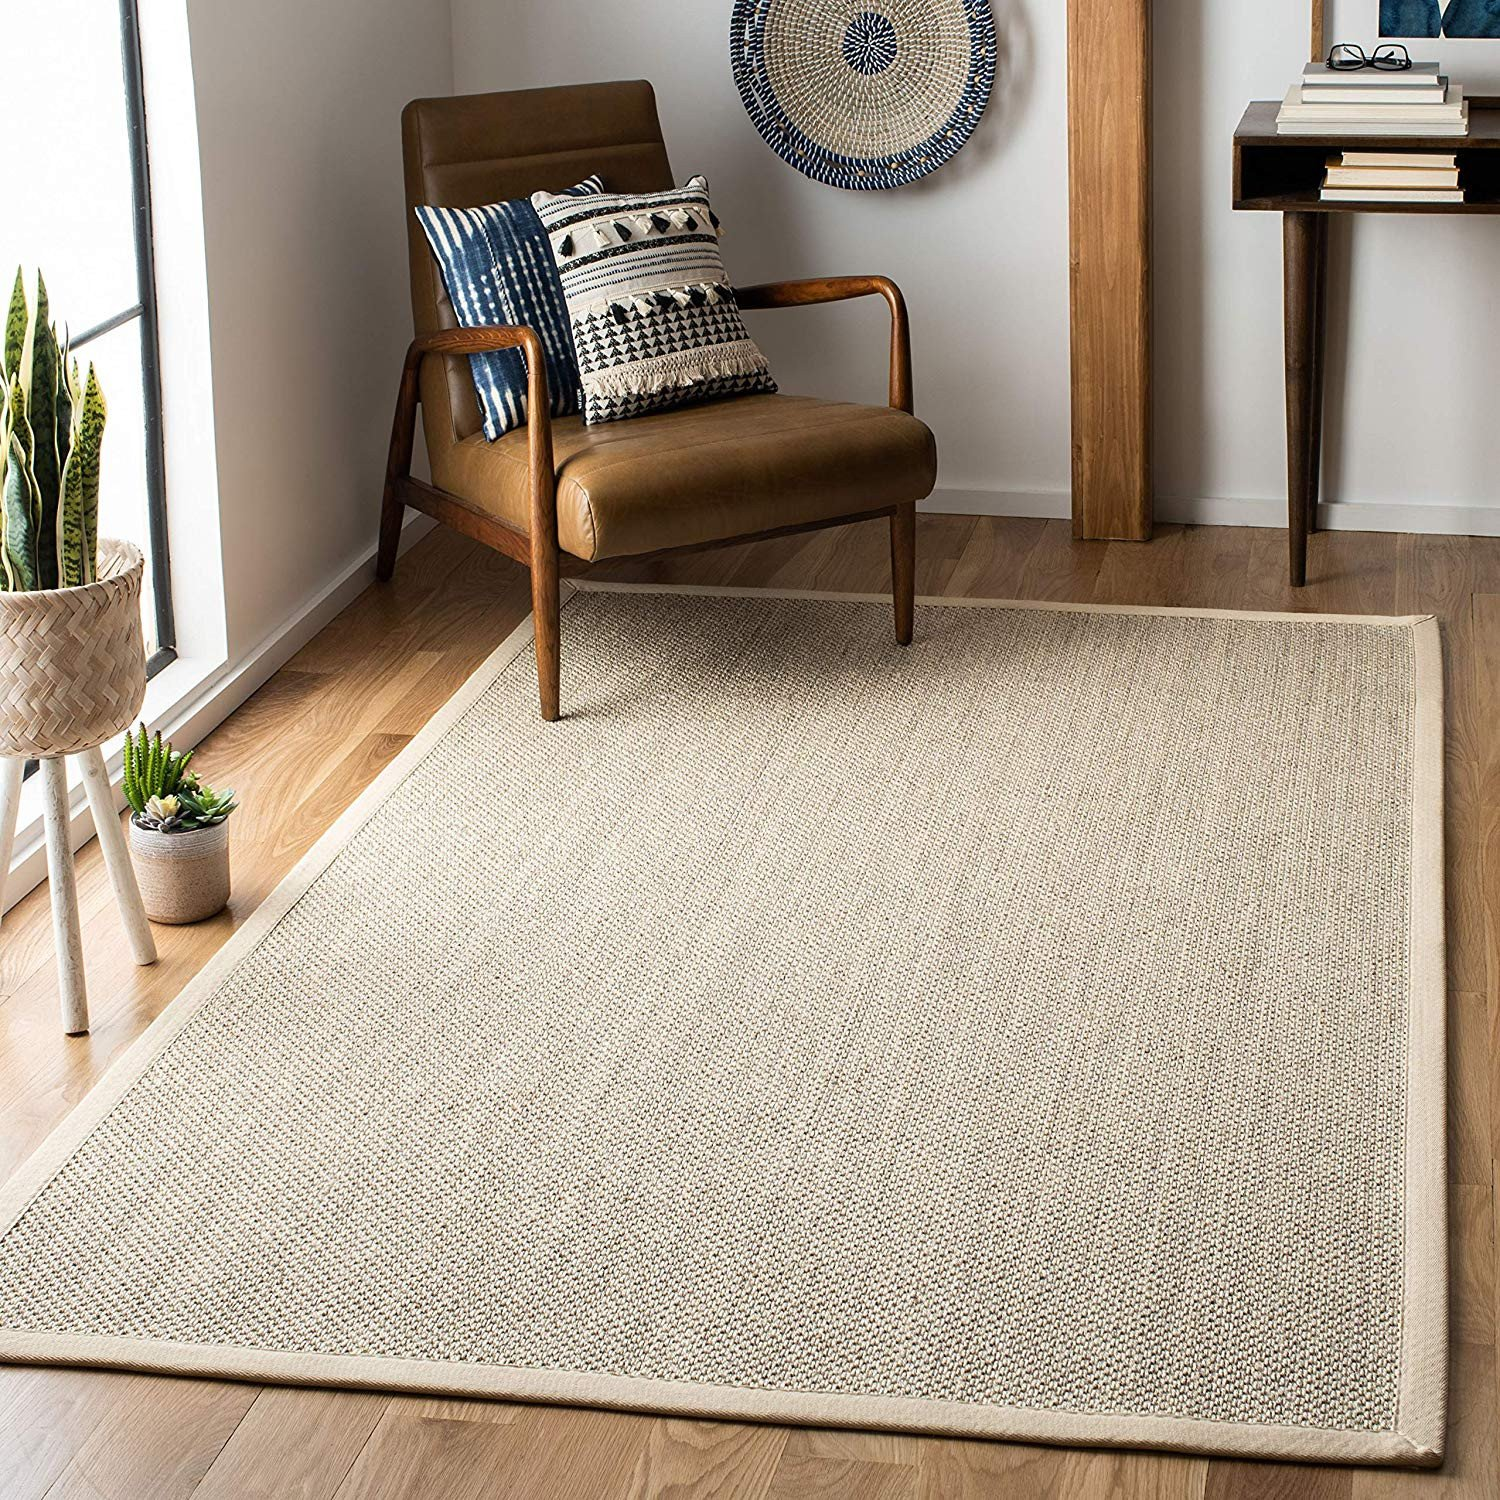 Bedroom area Rug Placement Elegant Safavieh Natural Fiber Collection Nf143c Marble and Beige Sisal area Rug 4 X 6